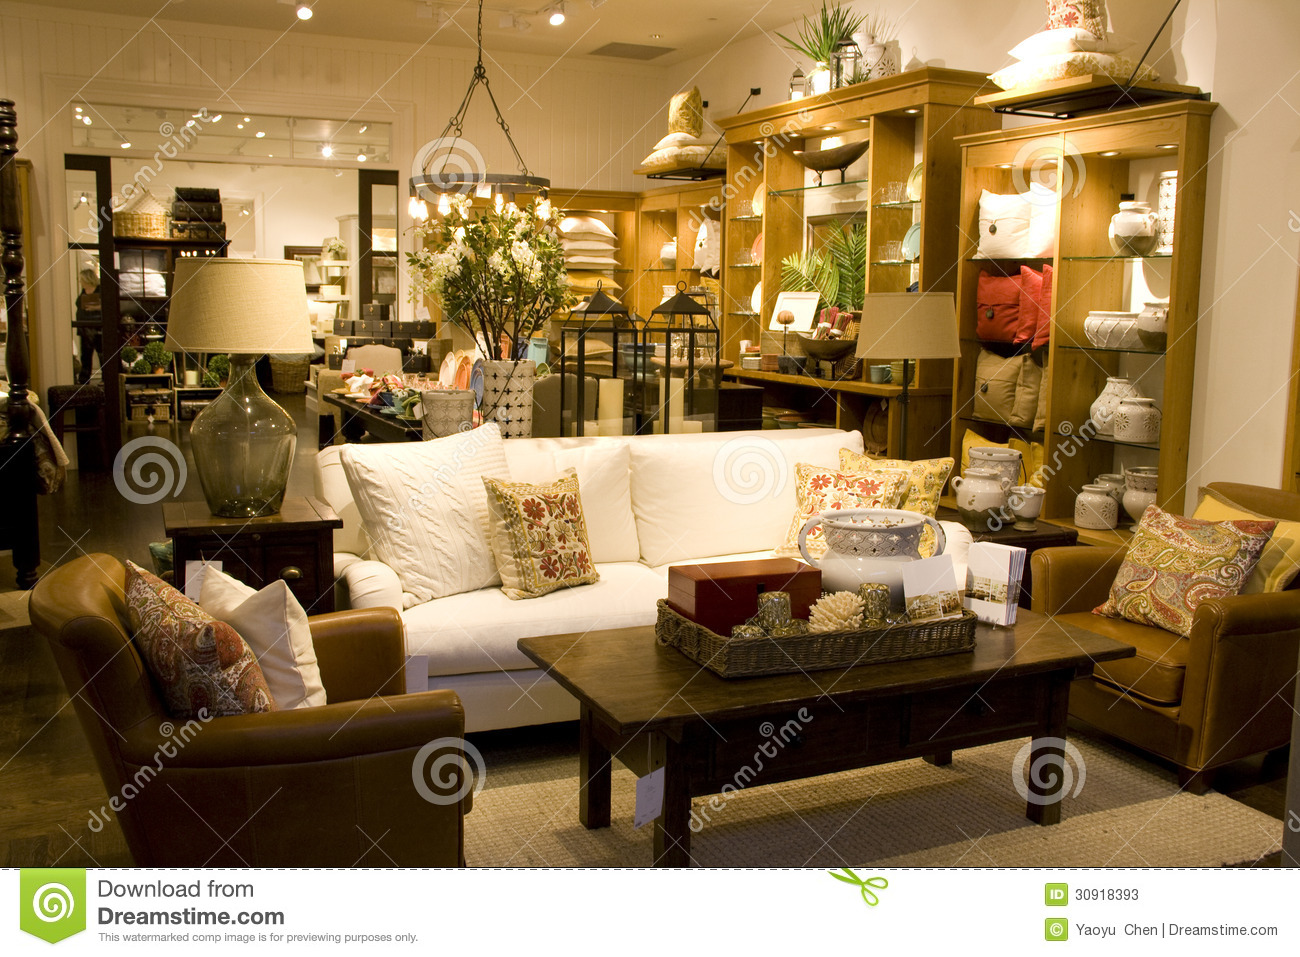 Furniture and home decor store stock image image 30918393 for Home furnishing stores